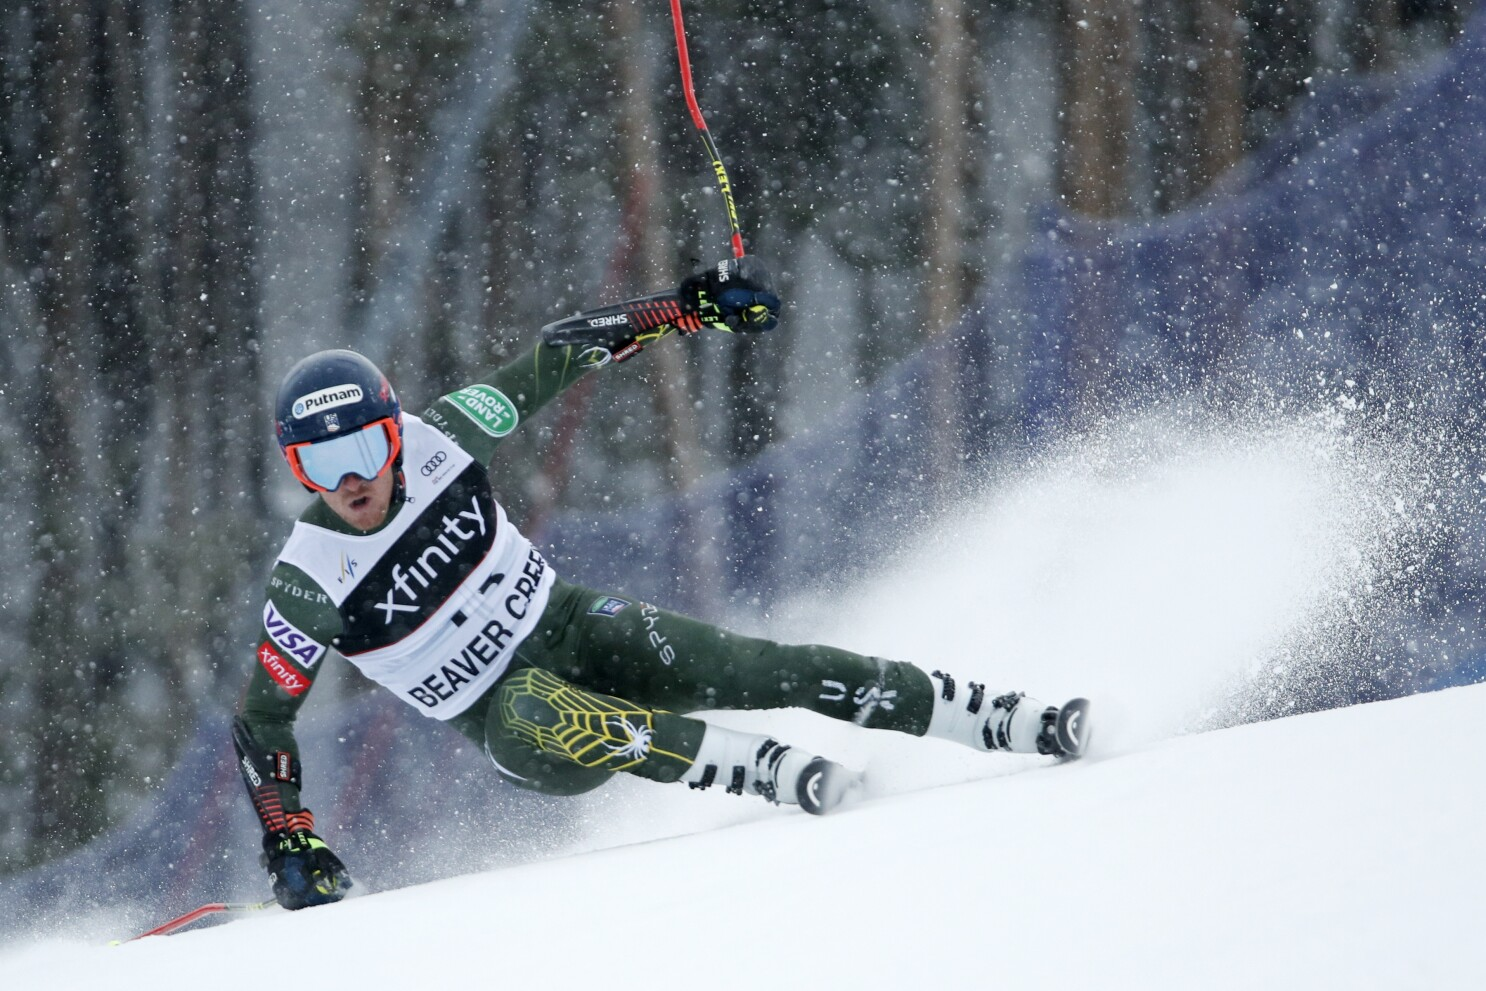 Ford Cruises In Giant Slalom For 1st Career World Cup Win The San Diego Union Tribune